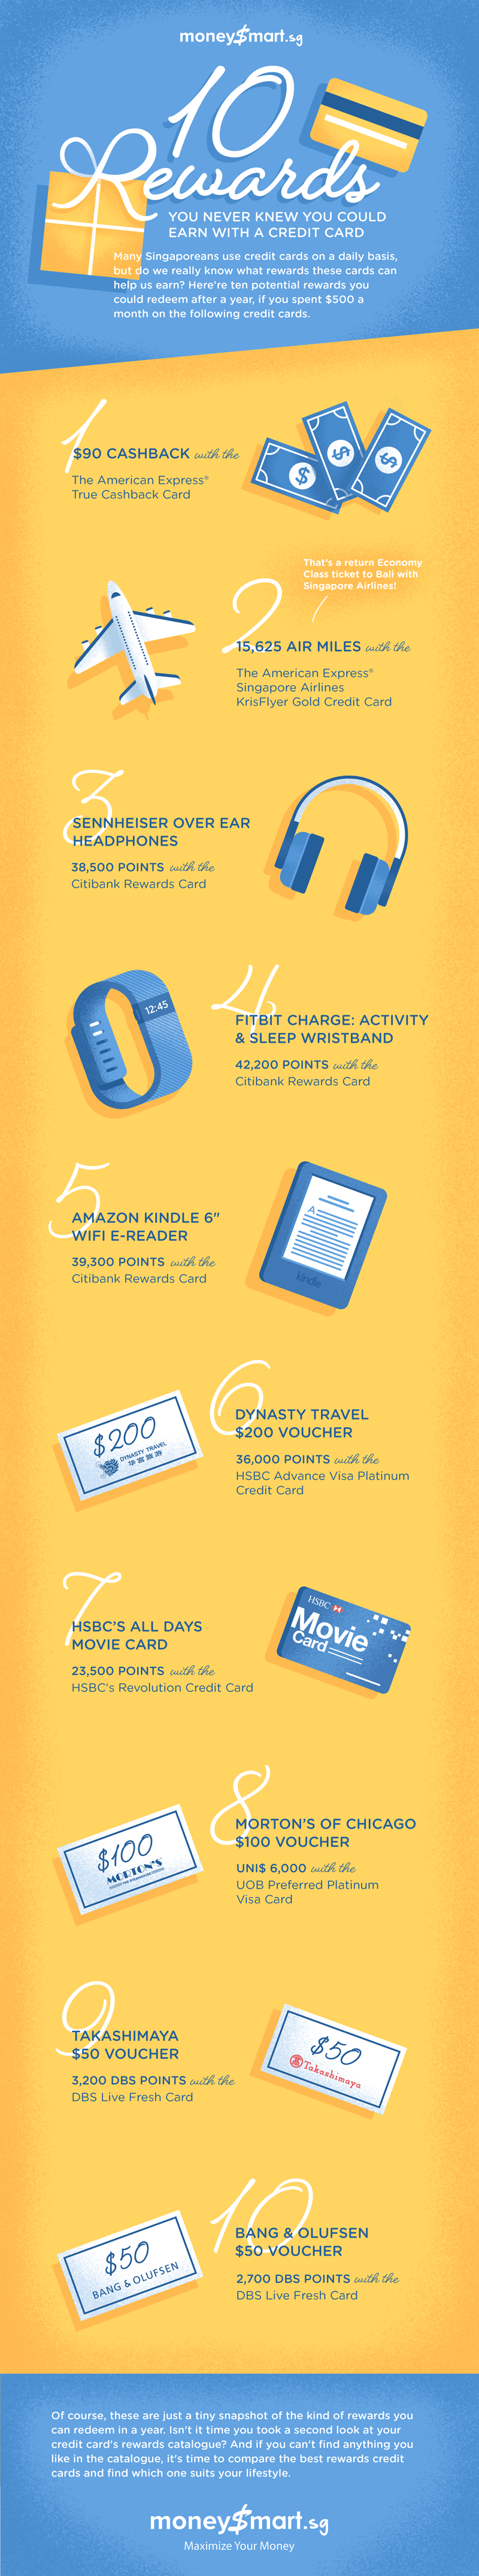 credit card rewards infographic